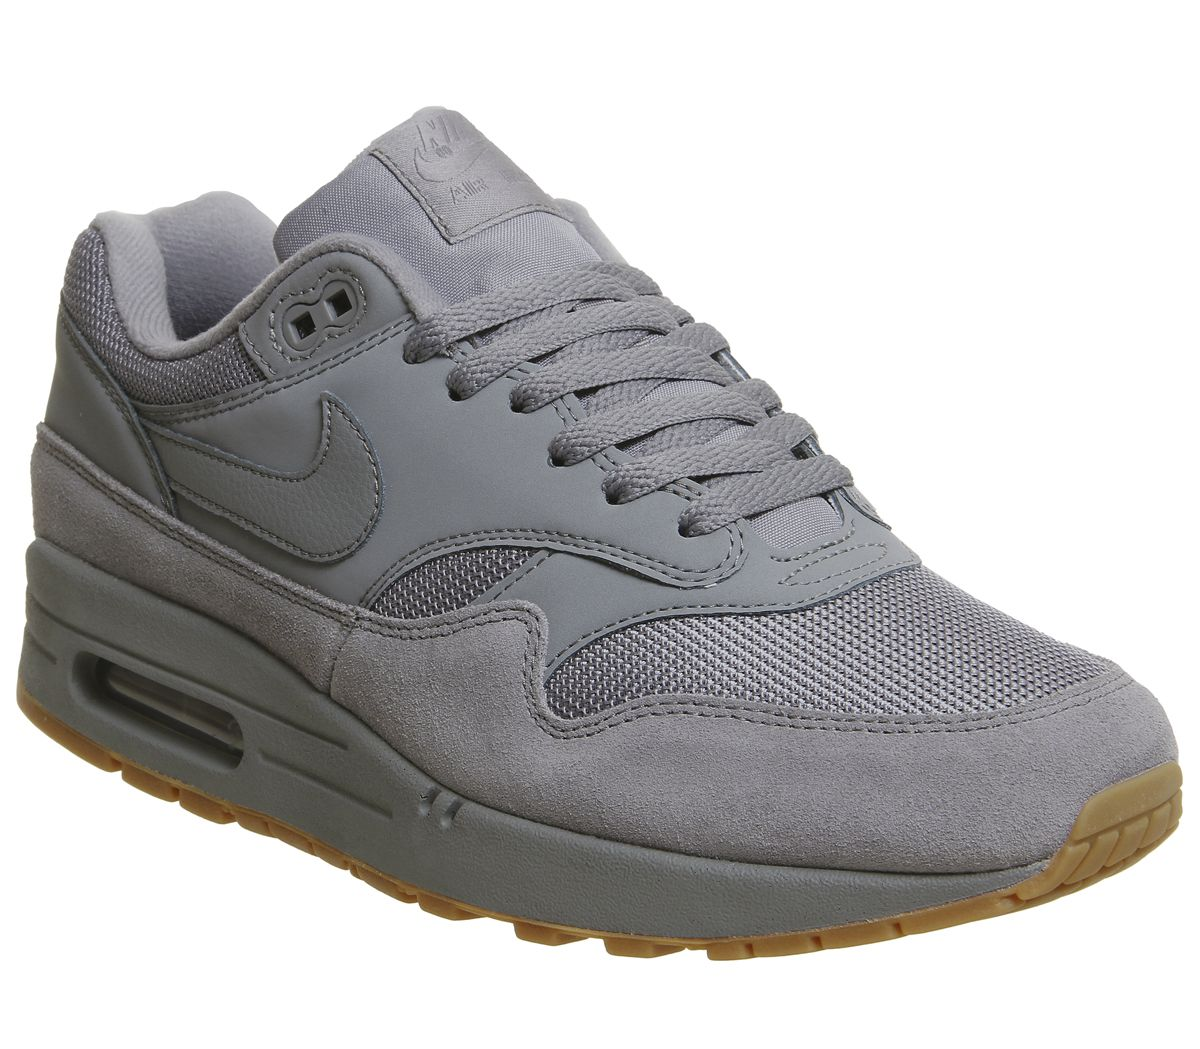 on sale f9bc3 a4600 Nike Air Max 1 Trainers Cool Grey Cool Grey Gum - His trainers